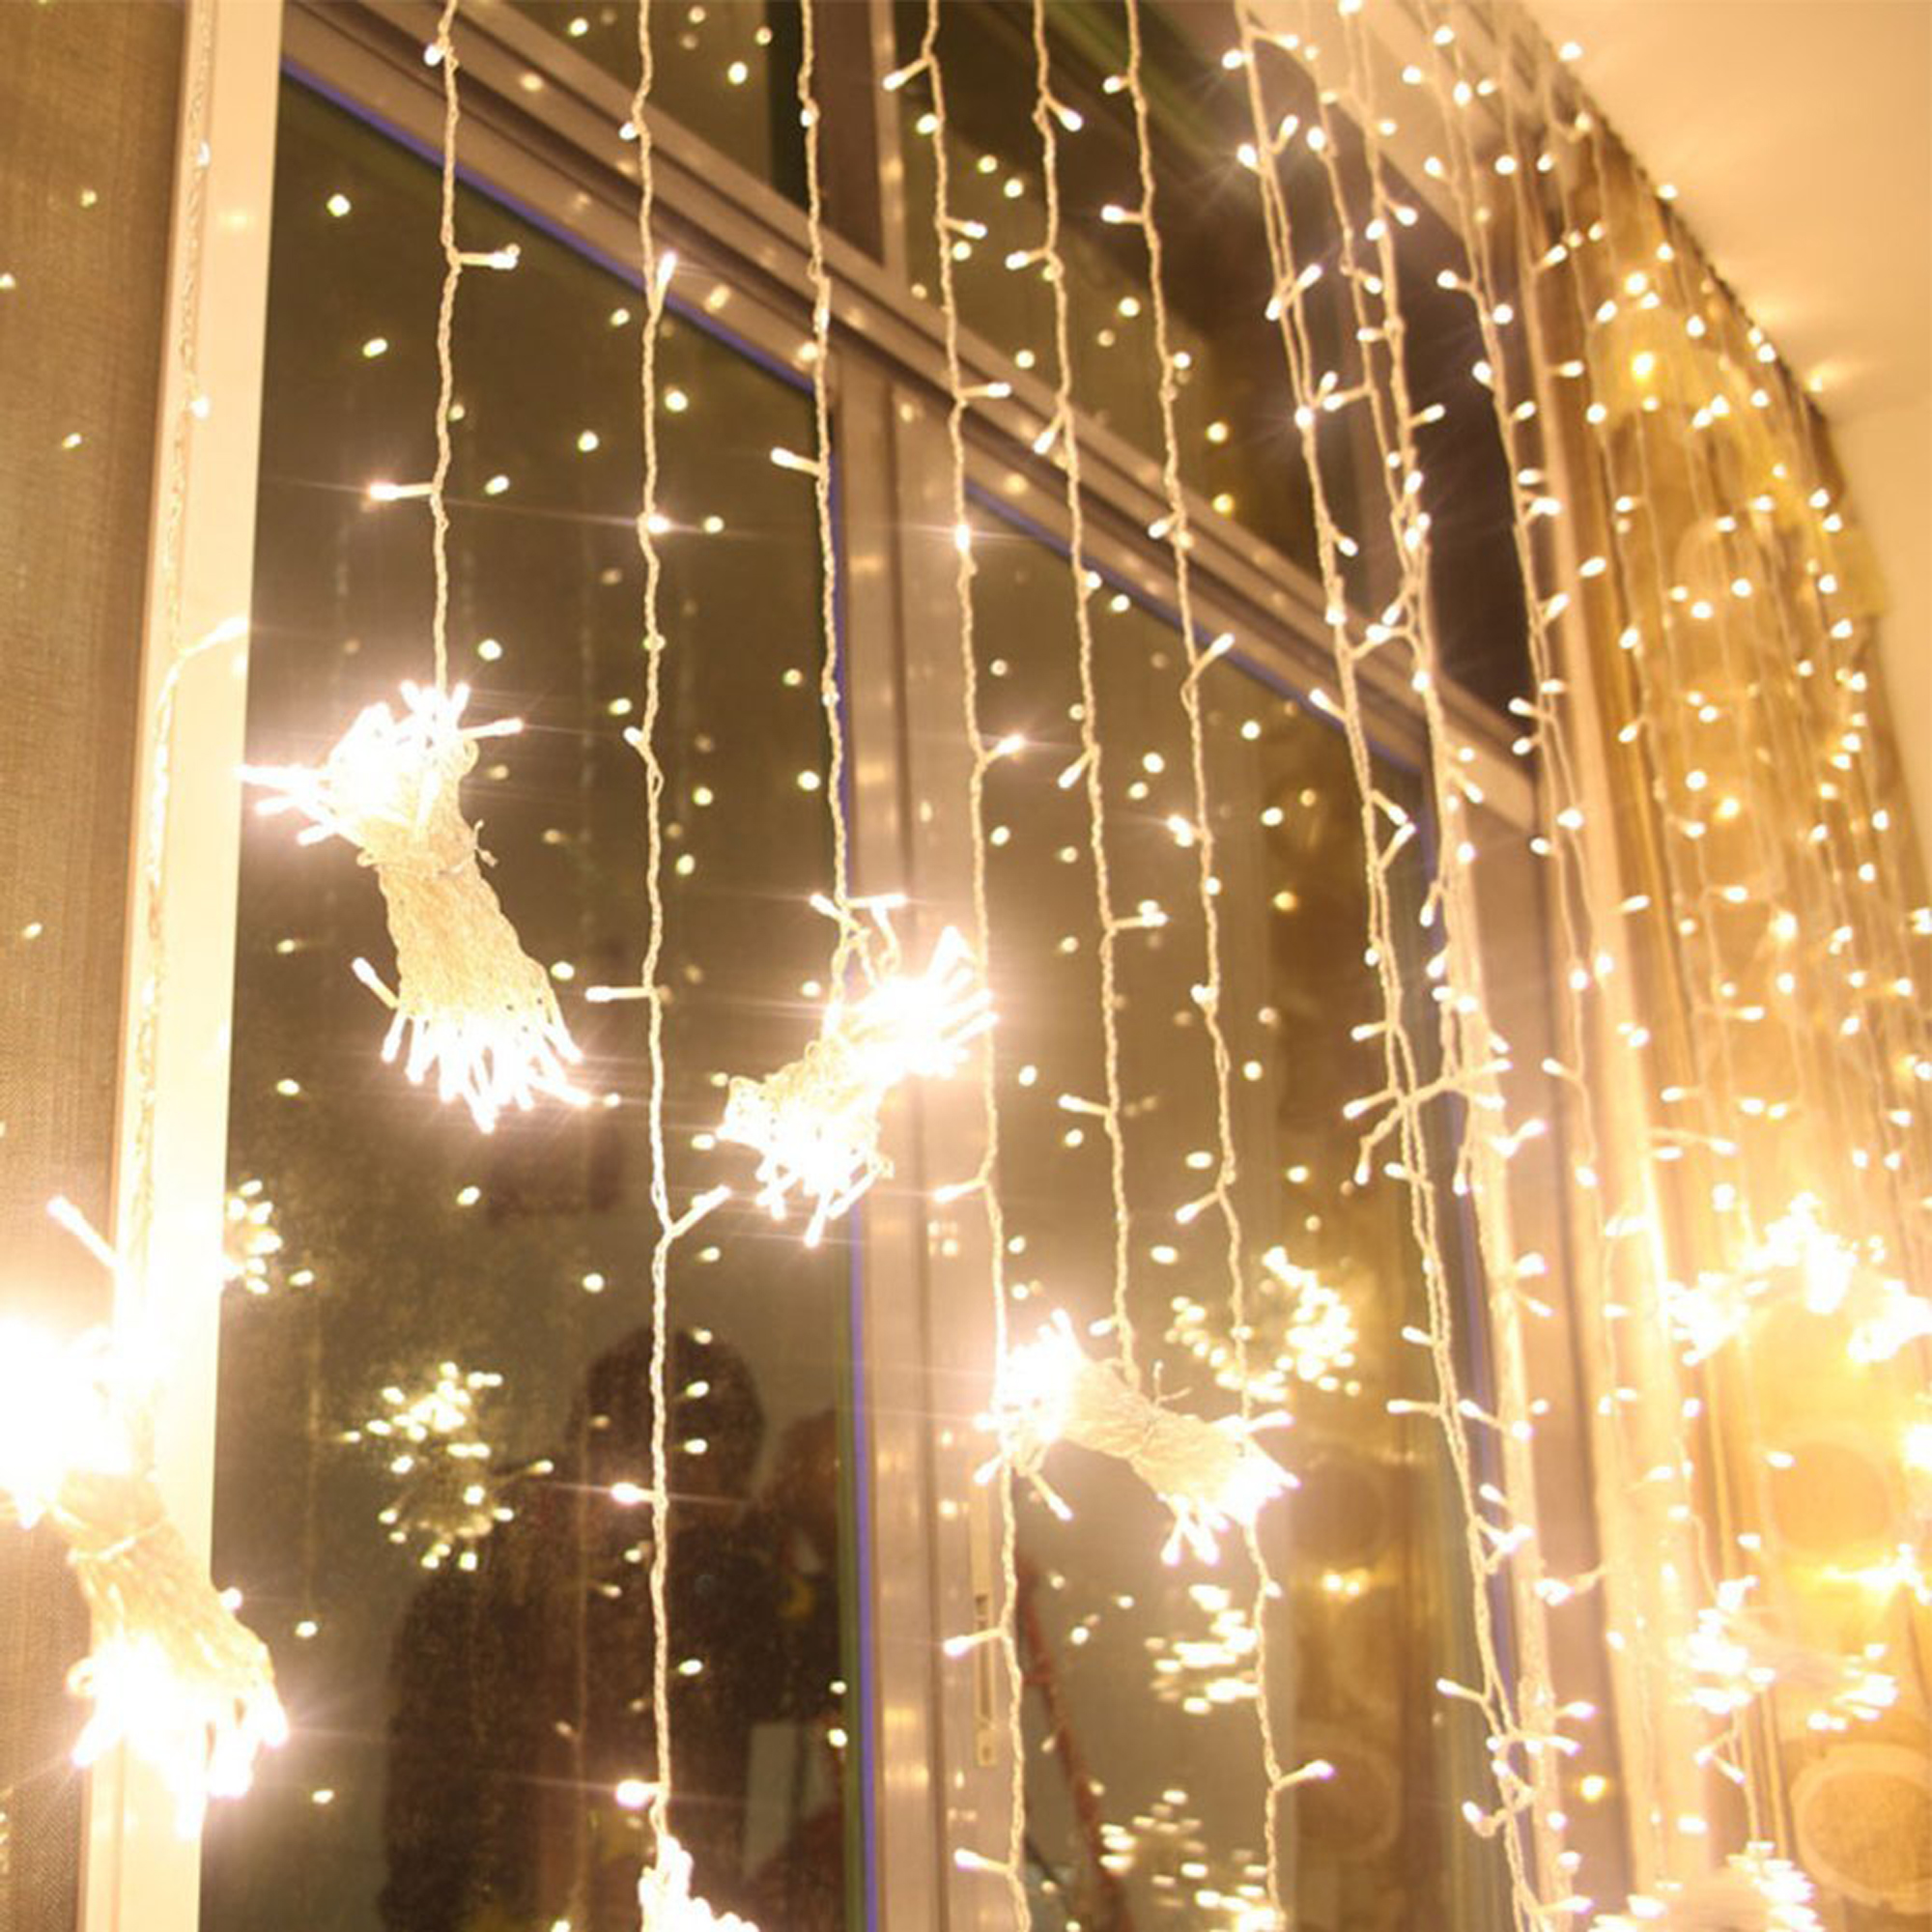 224led 9 8ft 6 6ft curtain string fairy wedding led lights for garden wedding party warm white